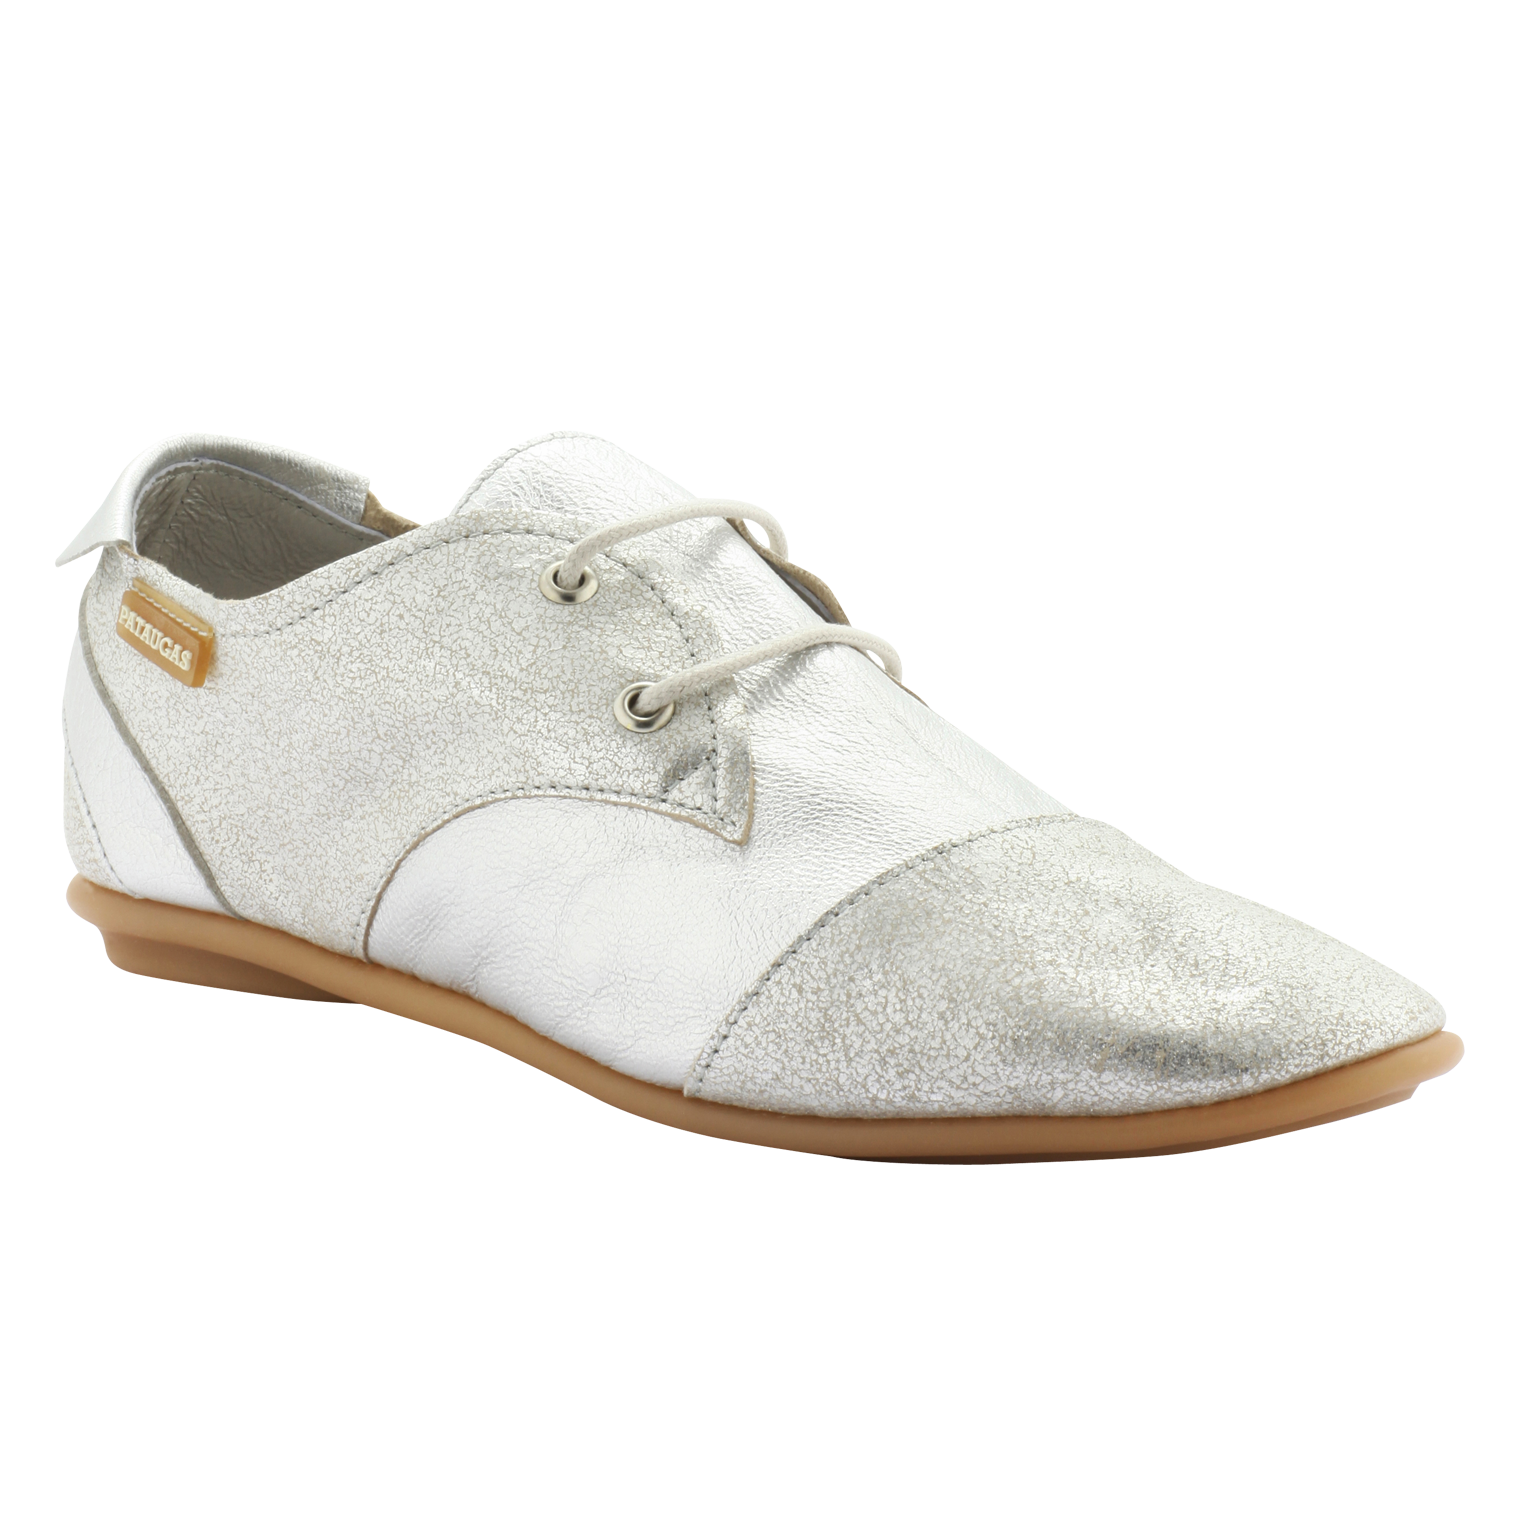 Chaussures Derby Chaussures Derby Swing Métallisé Swing Métallisé Cuir Derby Cuir Swing Cuir E688qTRSZ